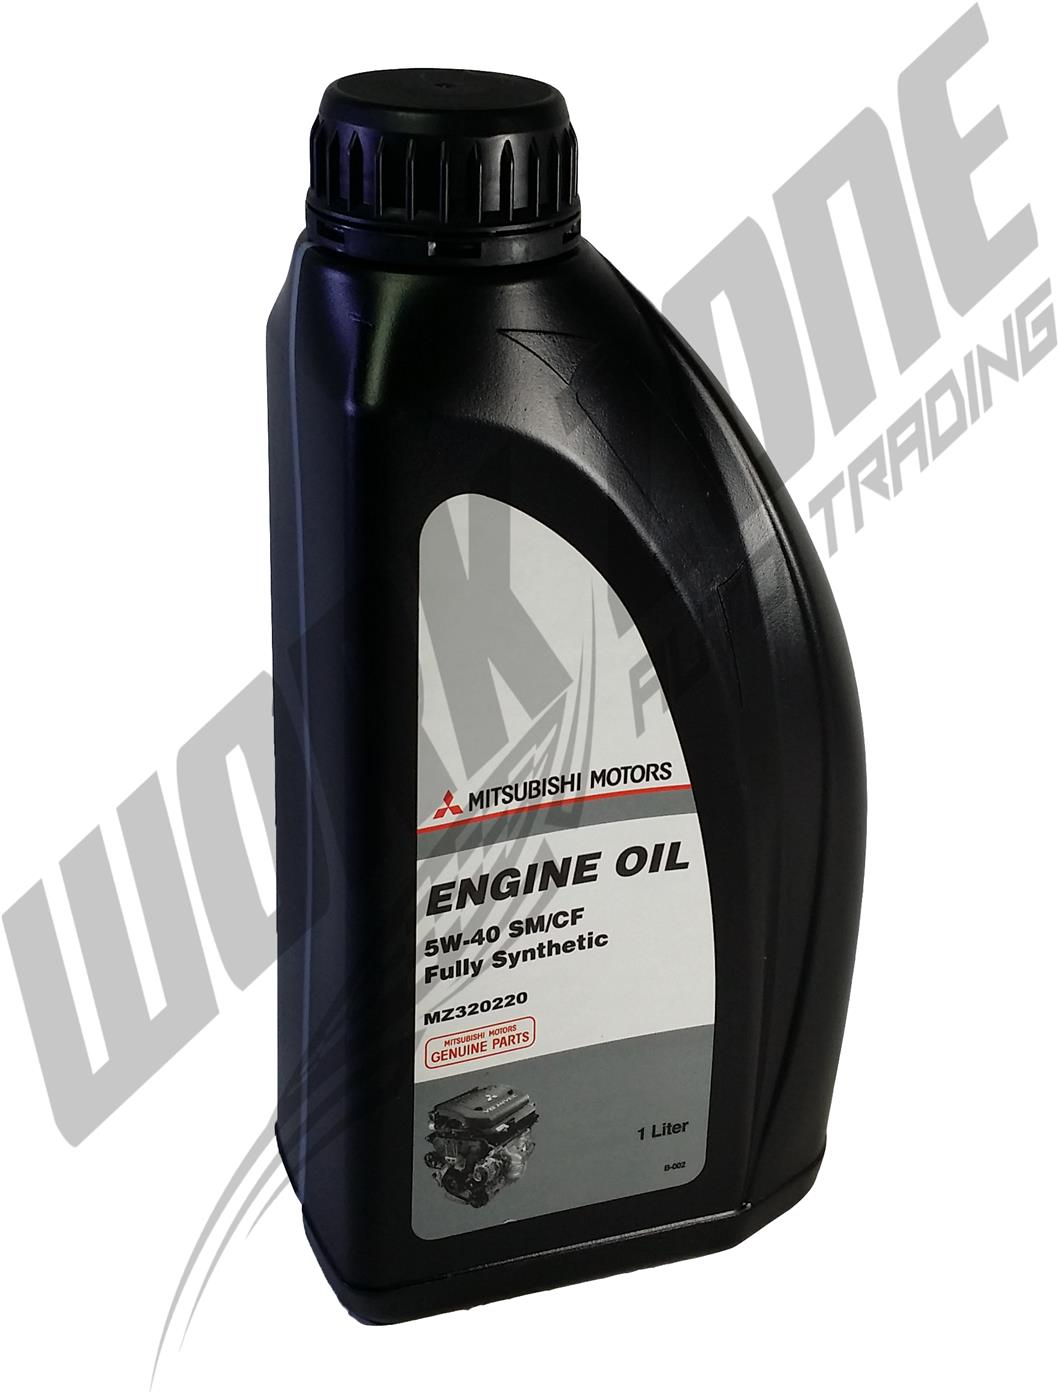 MITSUBISHI MOTORS ORIGINAL FULLY SYNTHETIC 5W40 ENGINE OIL